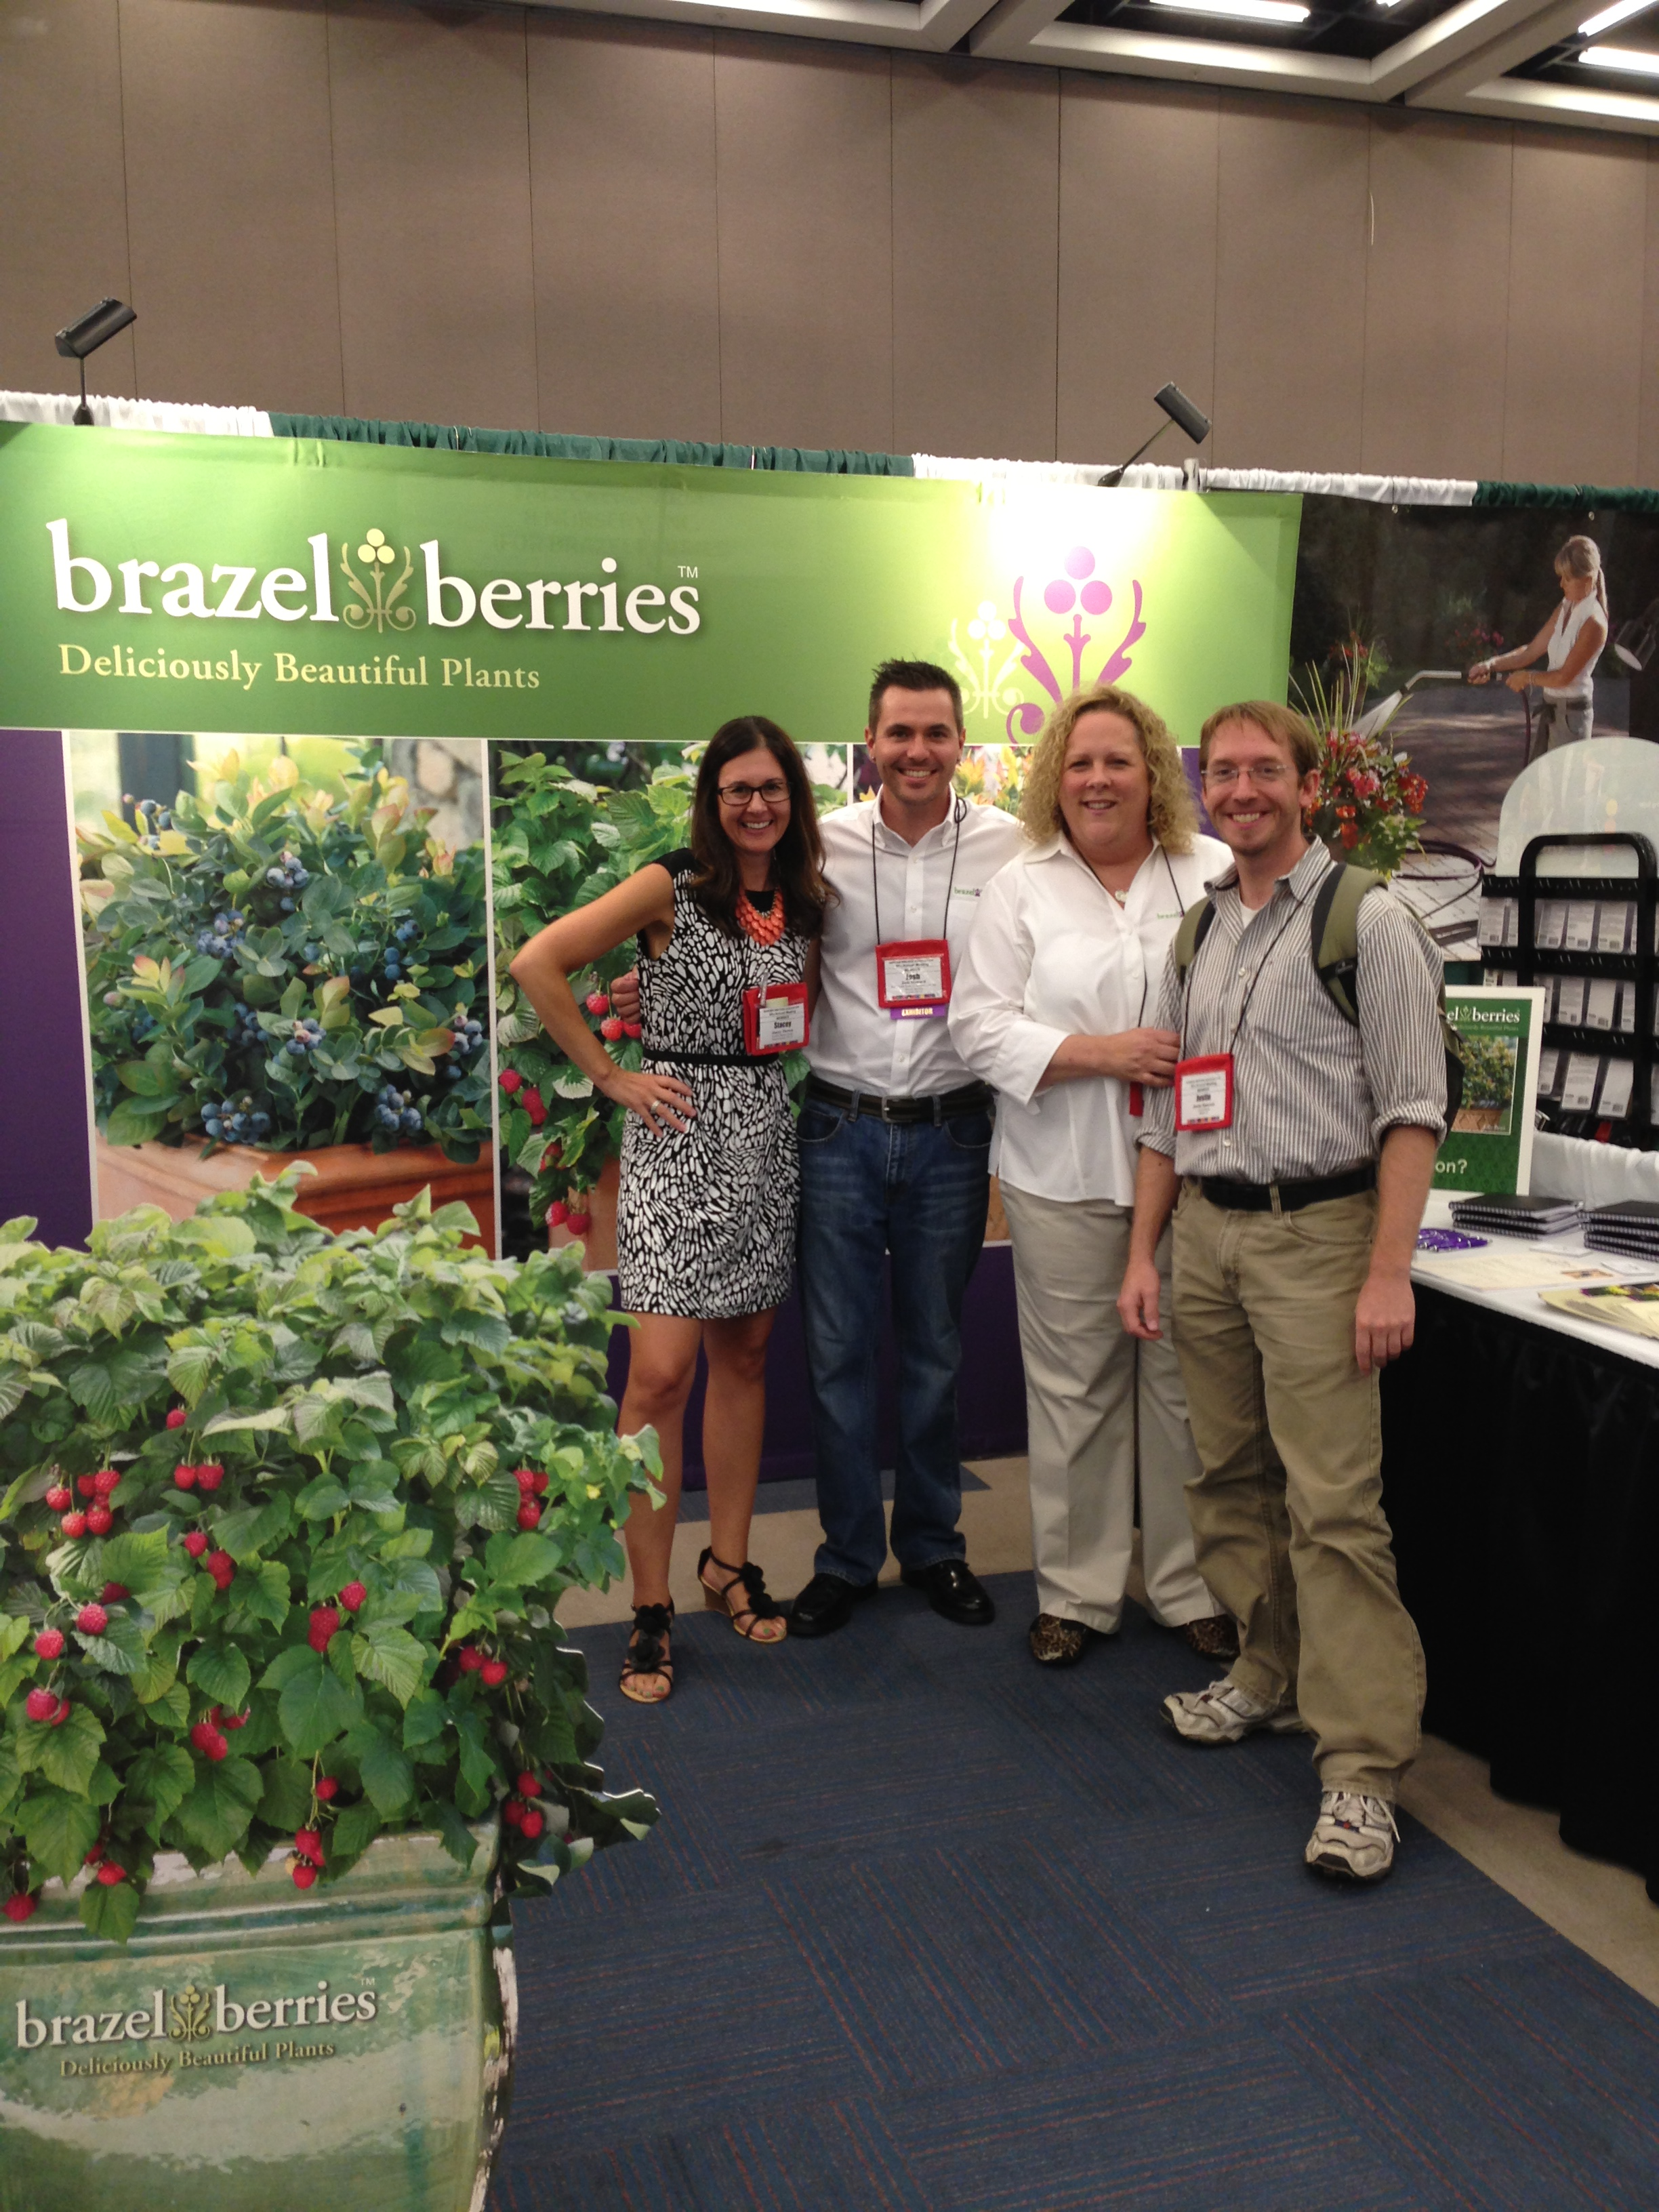 garden writers association, Quebec City, GWA 2013, GARDEN MEDIA GROUP, brazelberries, connecting with audience, public relations, content marketing, re-purposing content